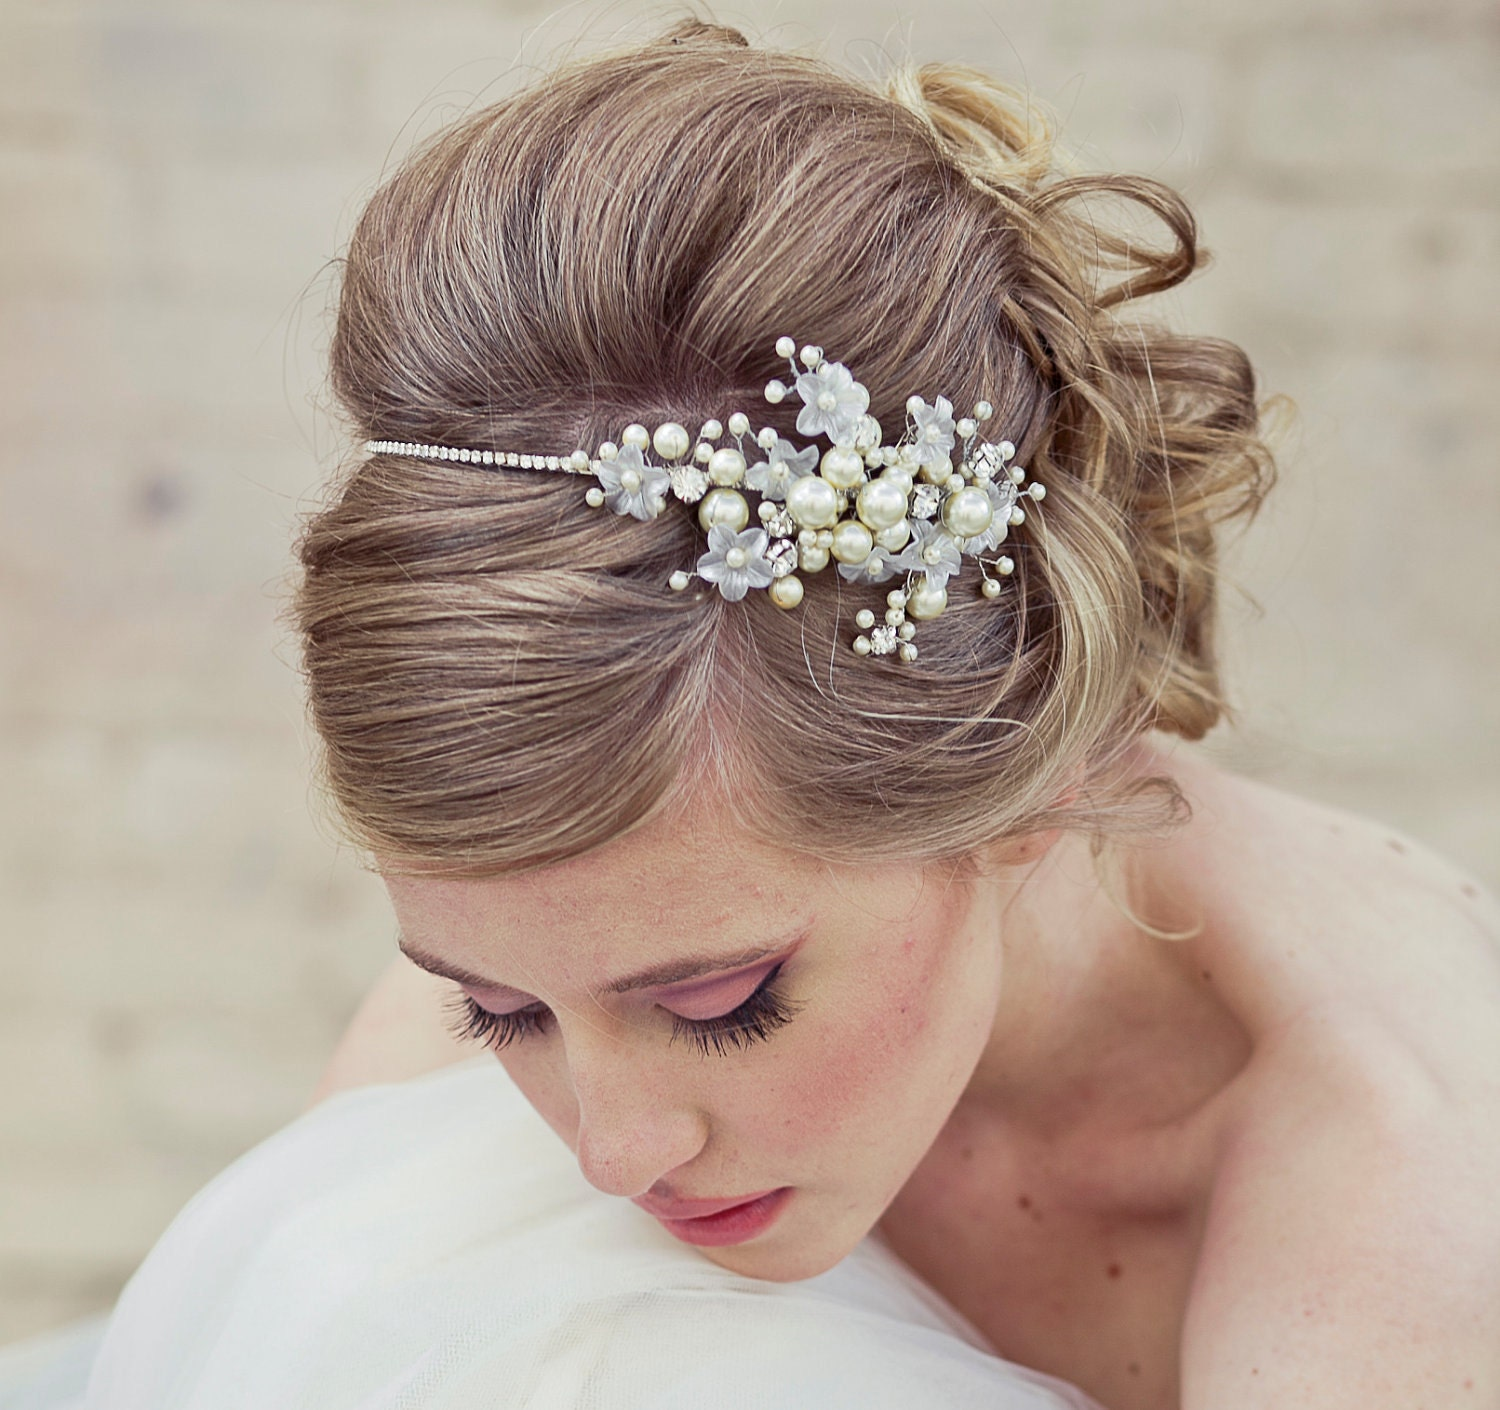 Bridal Headband Rhinestone Wedding Tiara With Wired Flowers